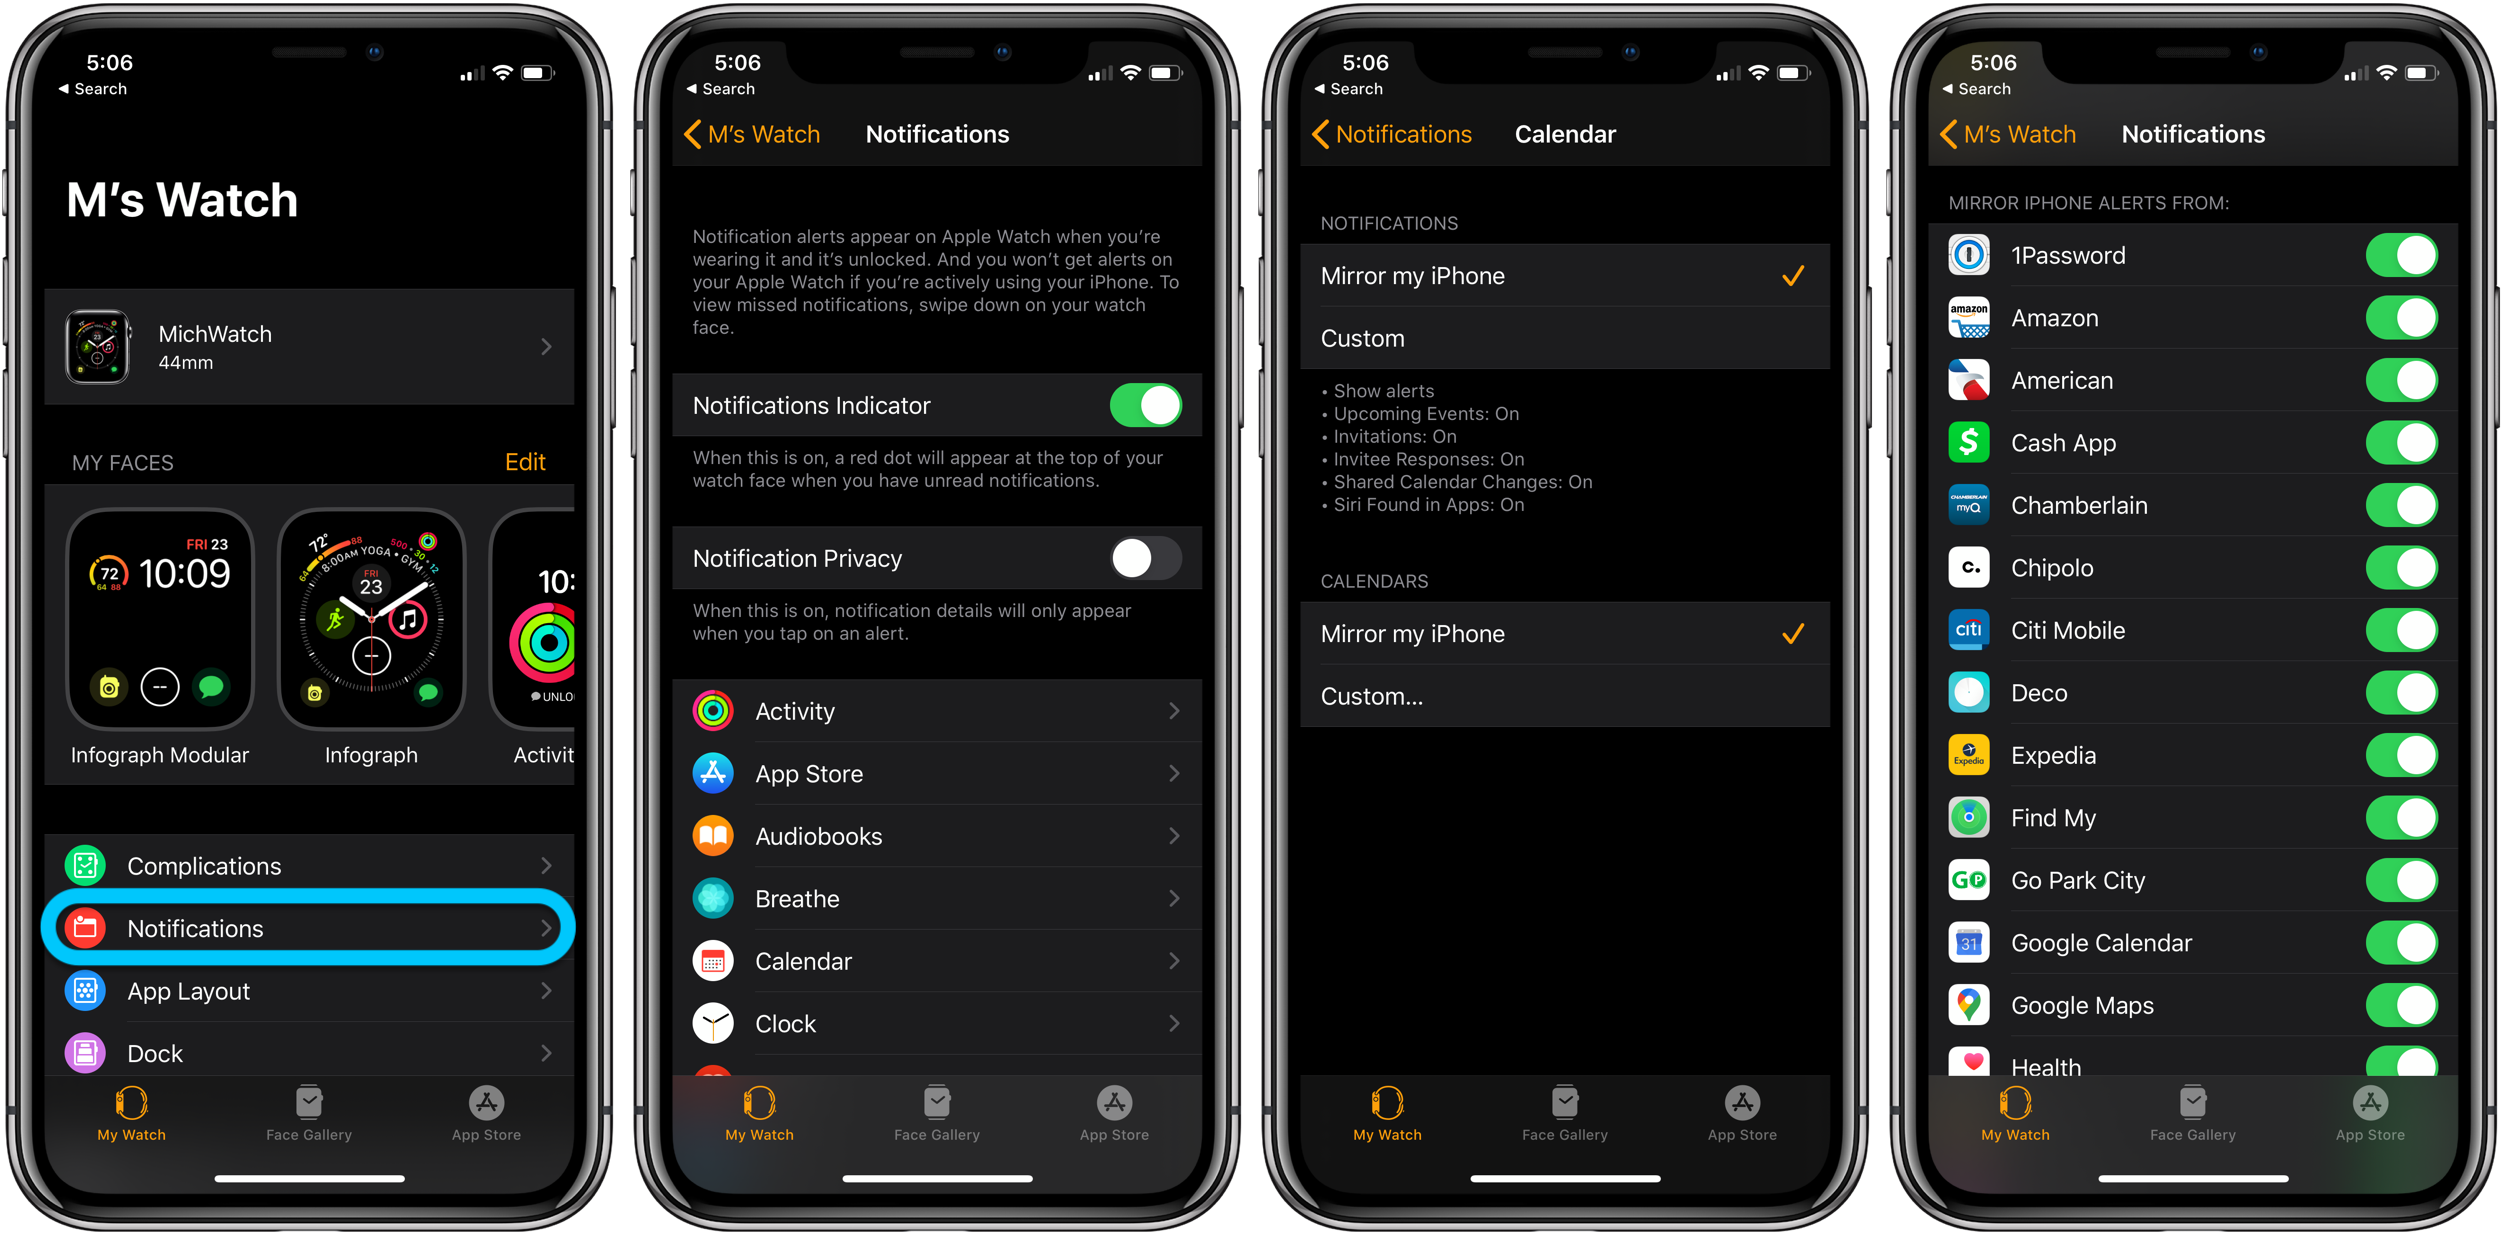 How to see Apple Watch notifications walkthrough 2